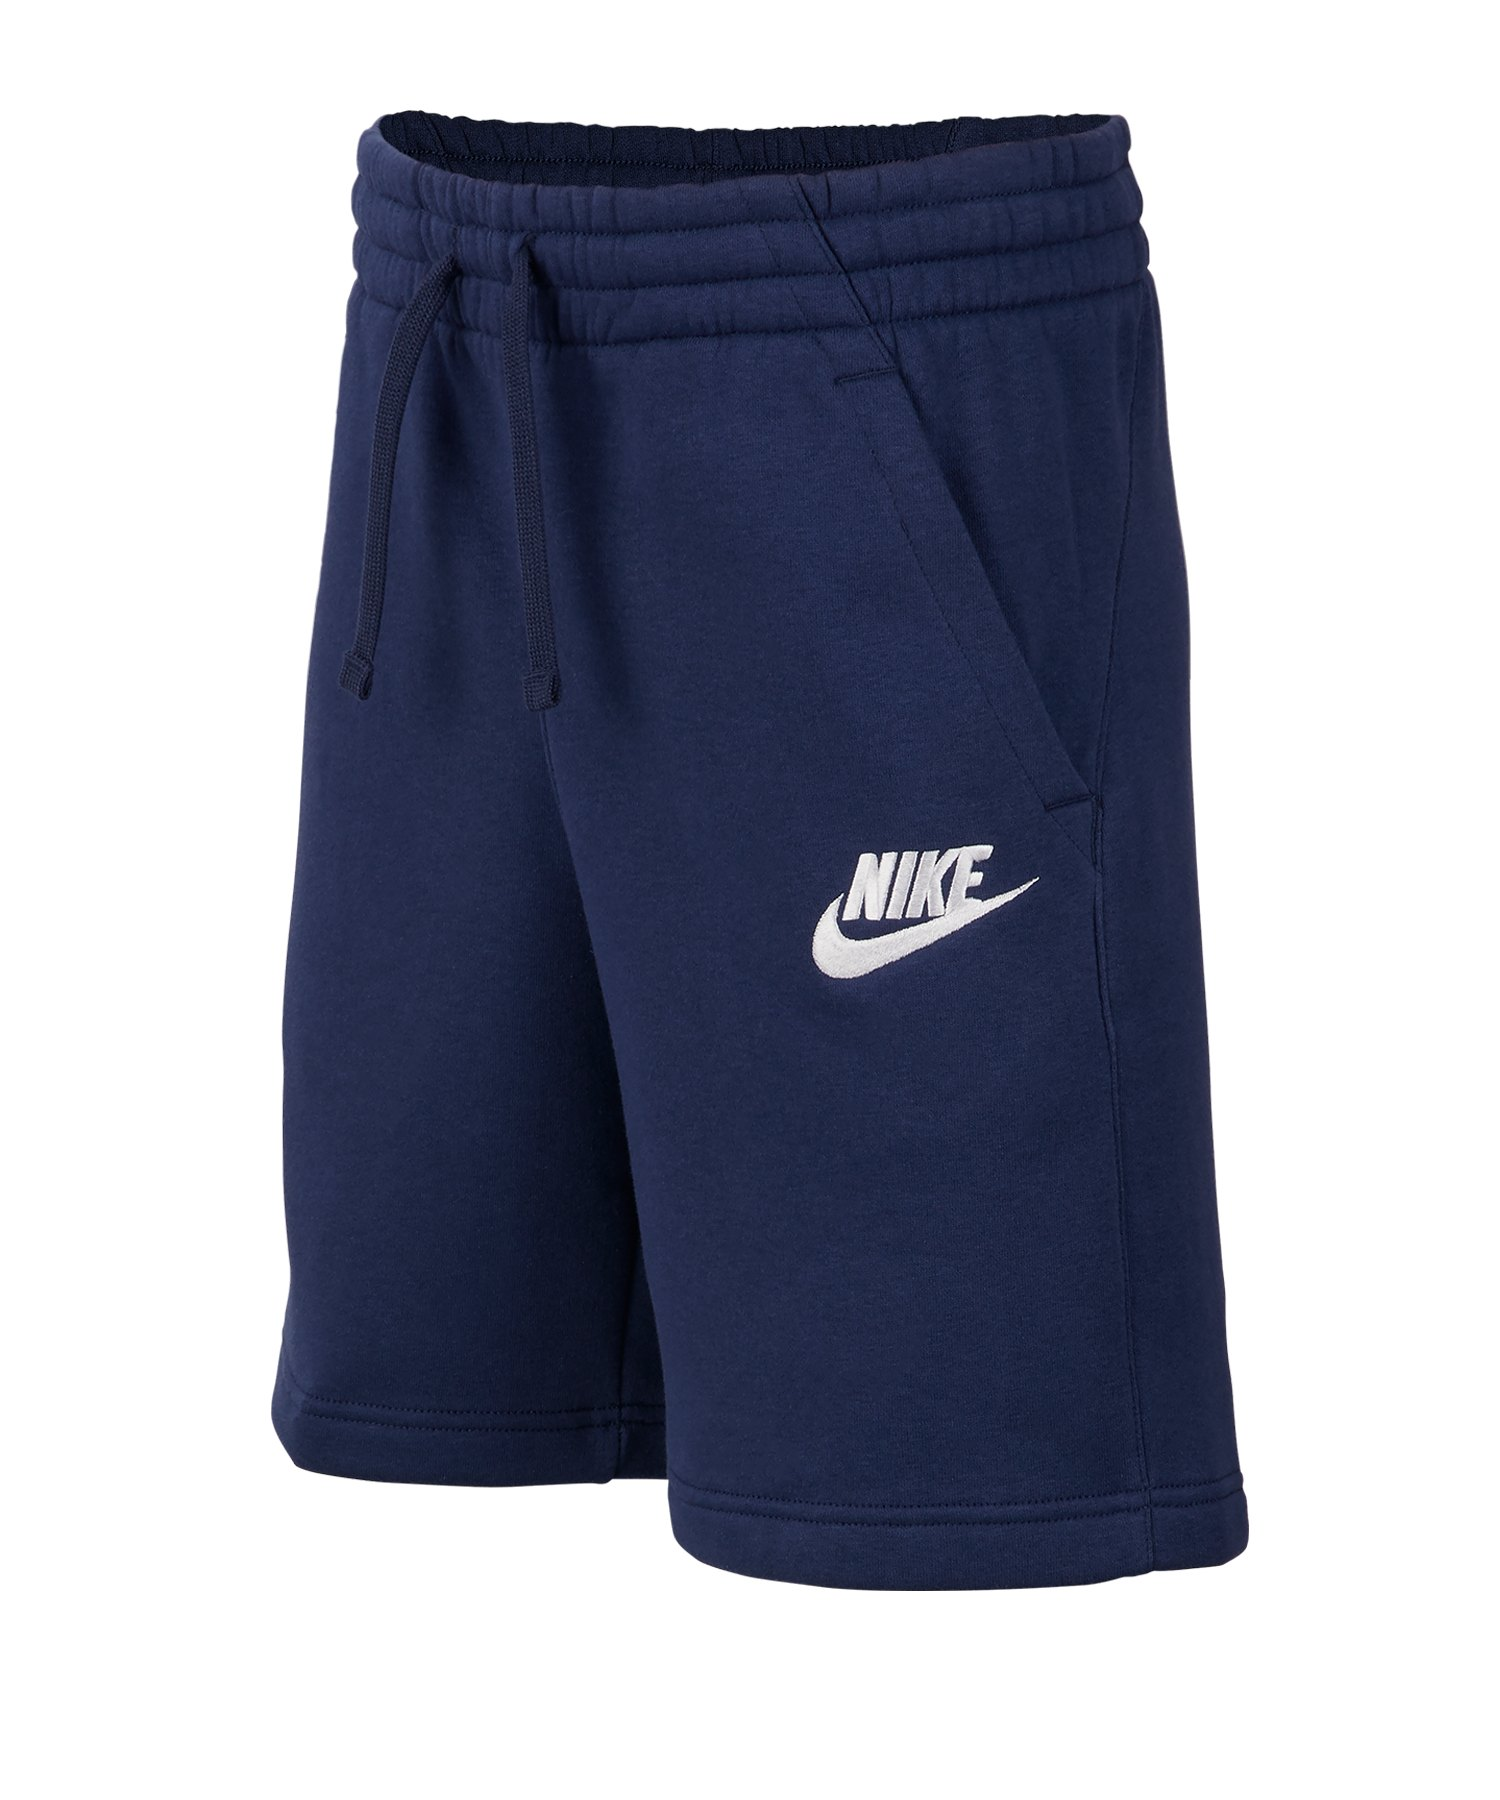 Nike Club Fleece Short Kids Blau F410 - blau